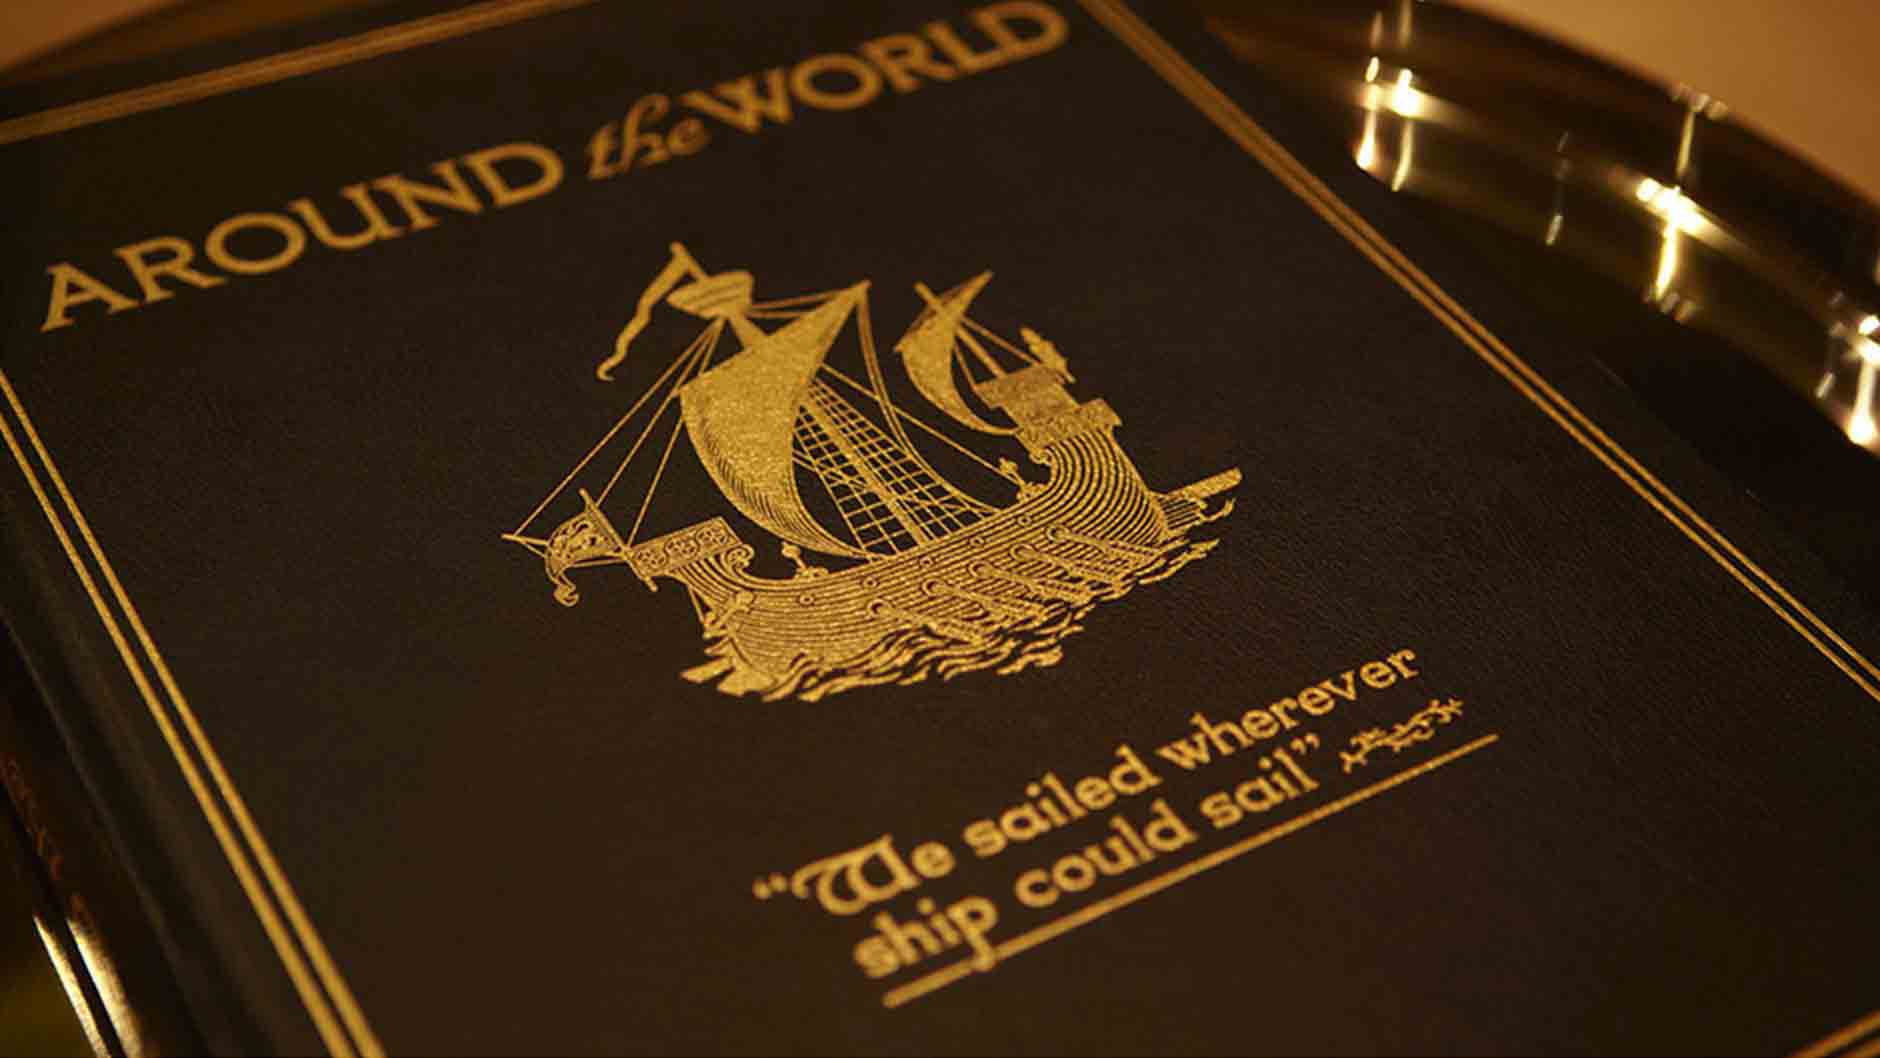 Aournd the world, we sailed wherever ship could sail book